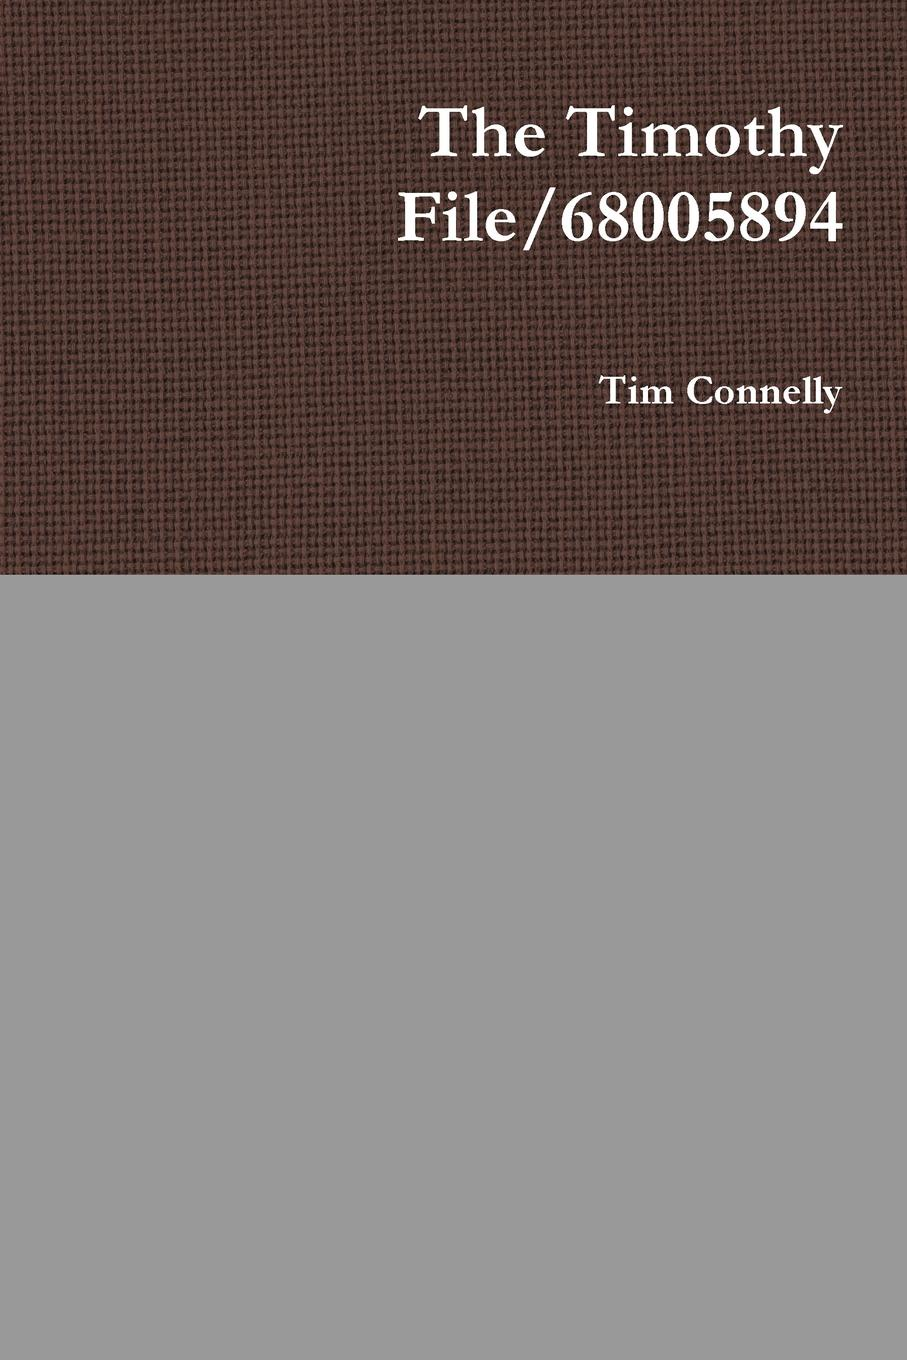 Tim Connelly The Timothy File/68005894